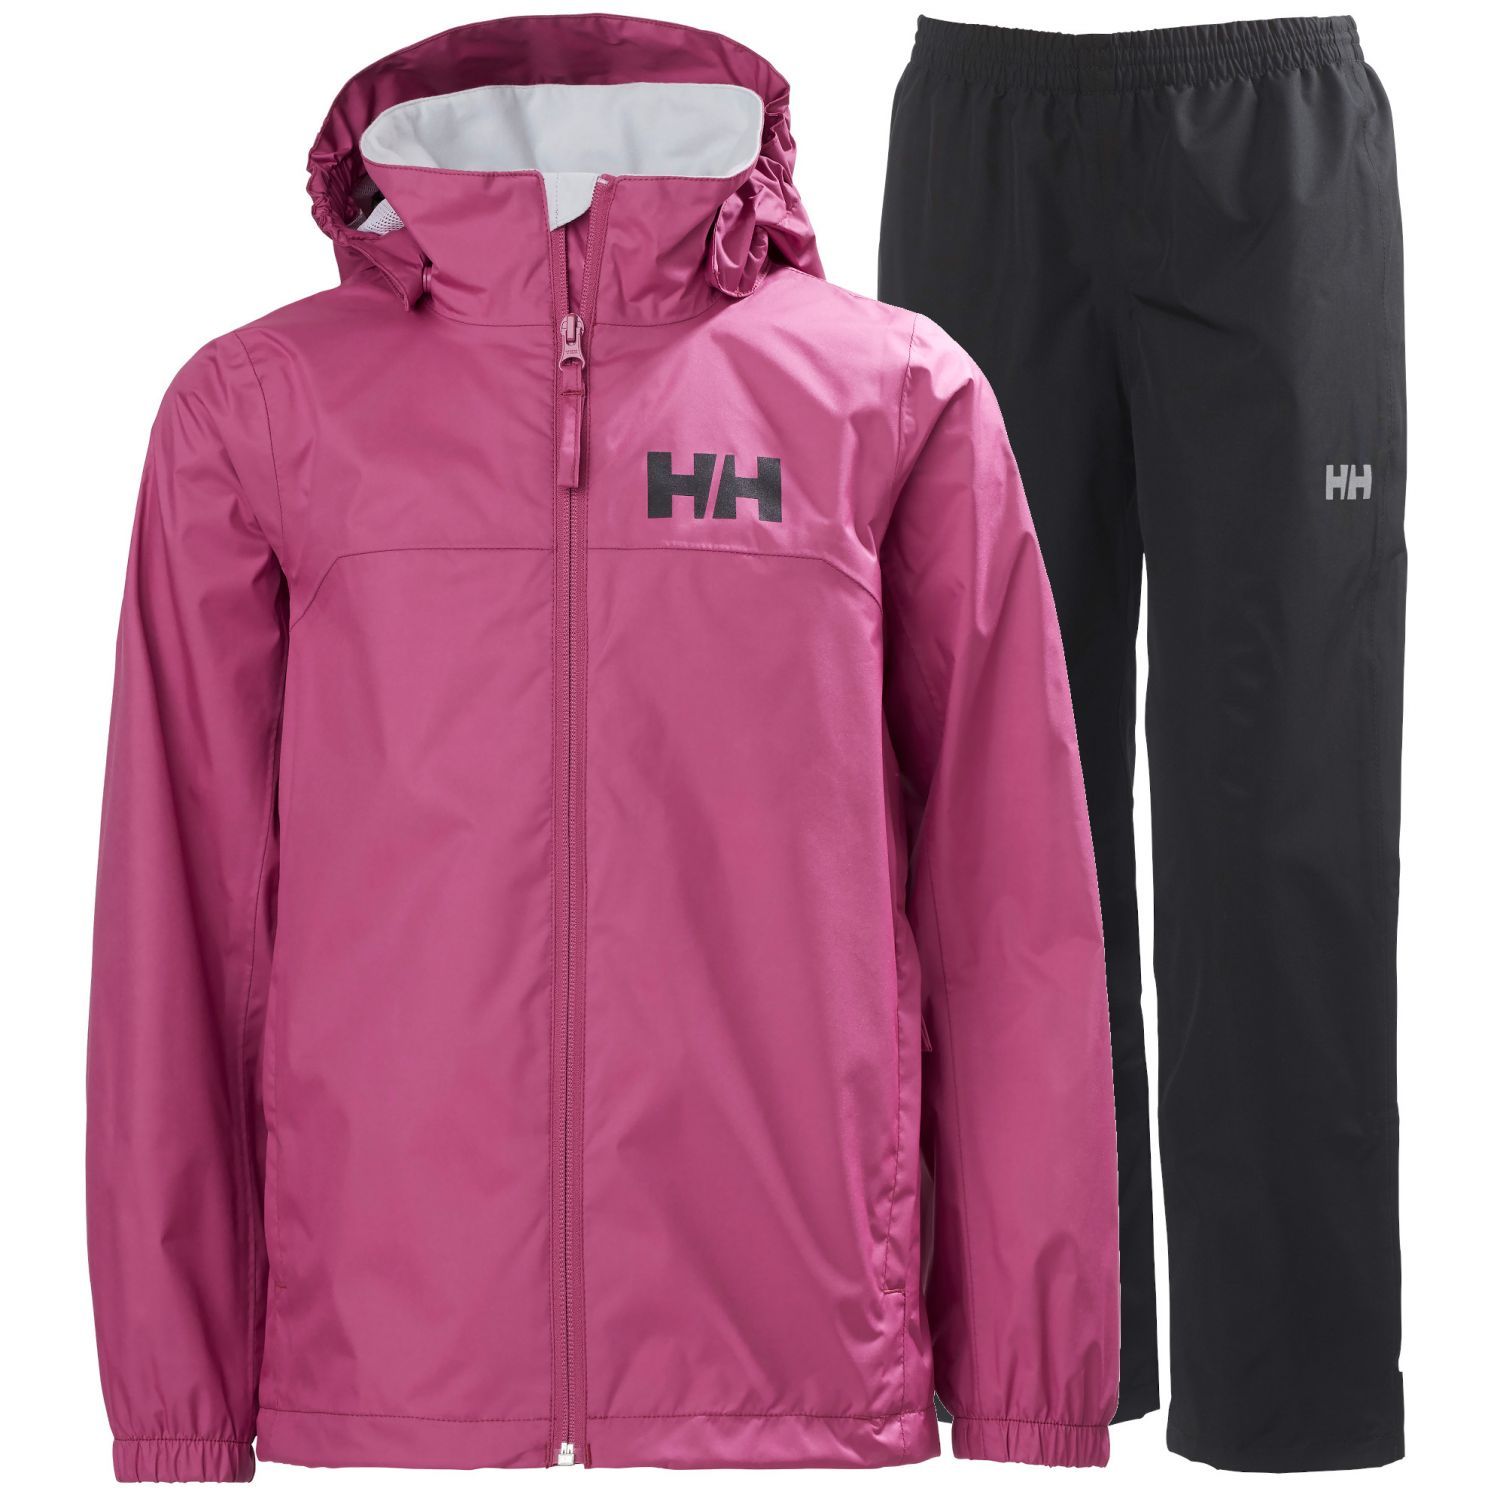 Helly Hansen Urban/Dubliner, junior, purple/black